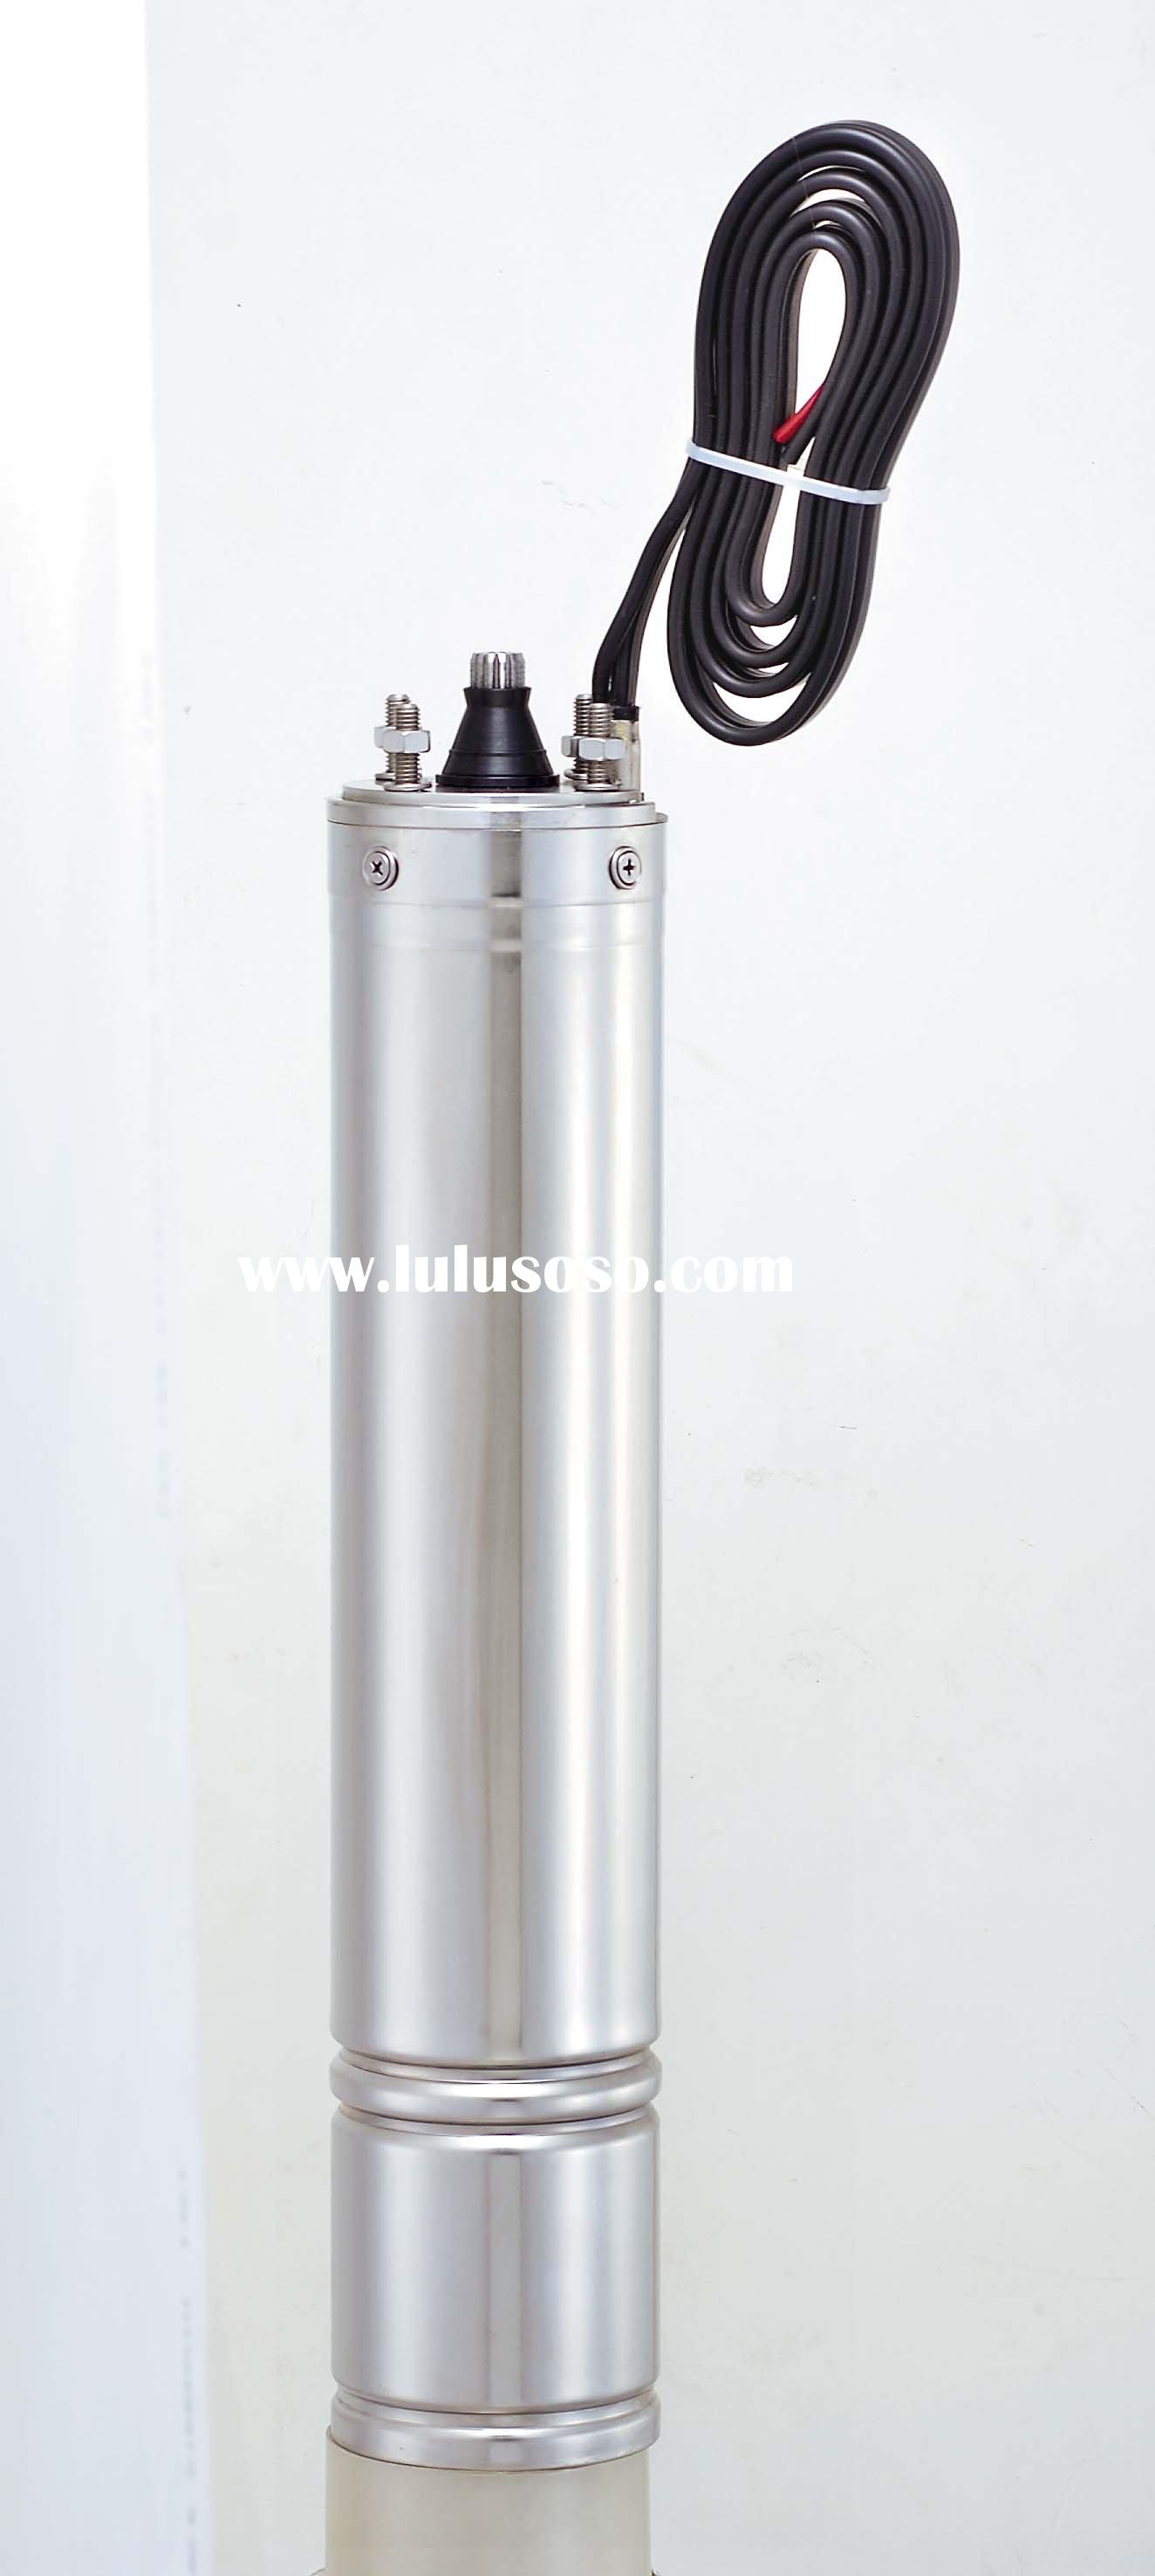 Pump Submersible Motor Pump Submersible Motor Manufacturers In Page 1